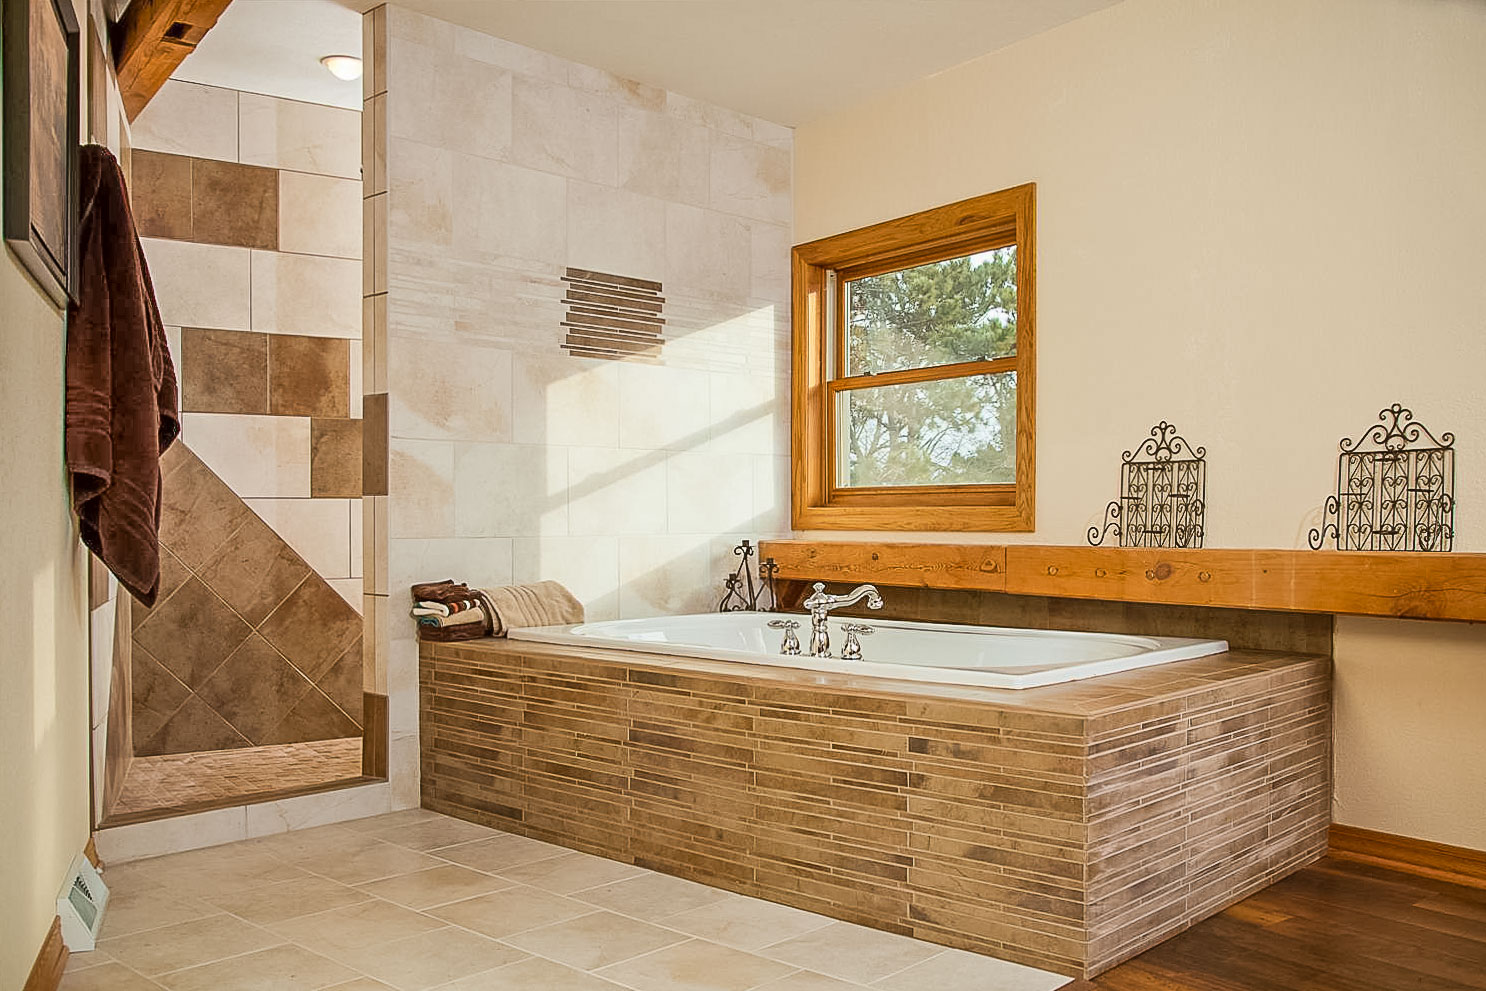 The Pros And Cons Of A Doorless Walk In Shower Design When Remodeling Degnan Build Remodel